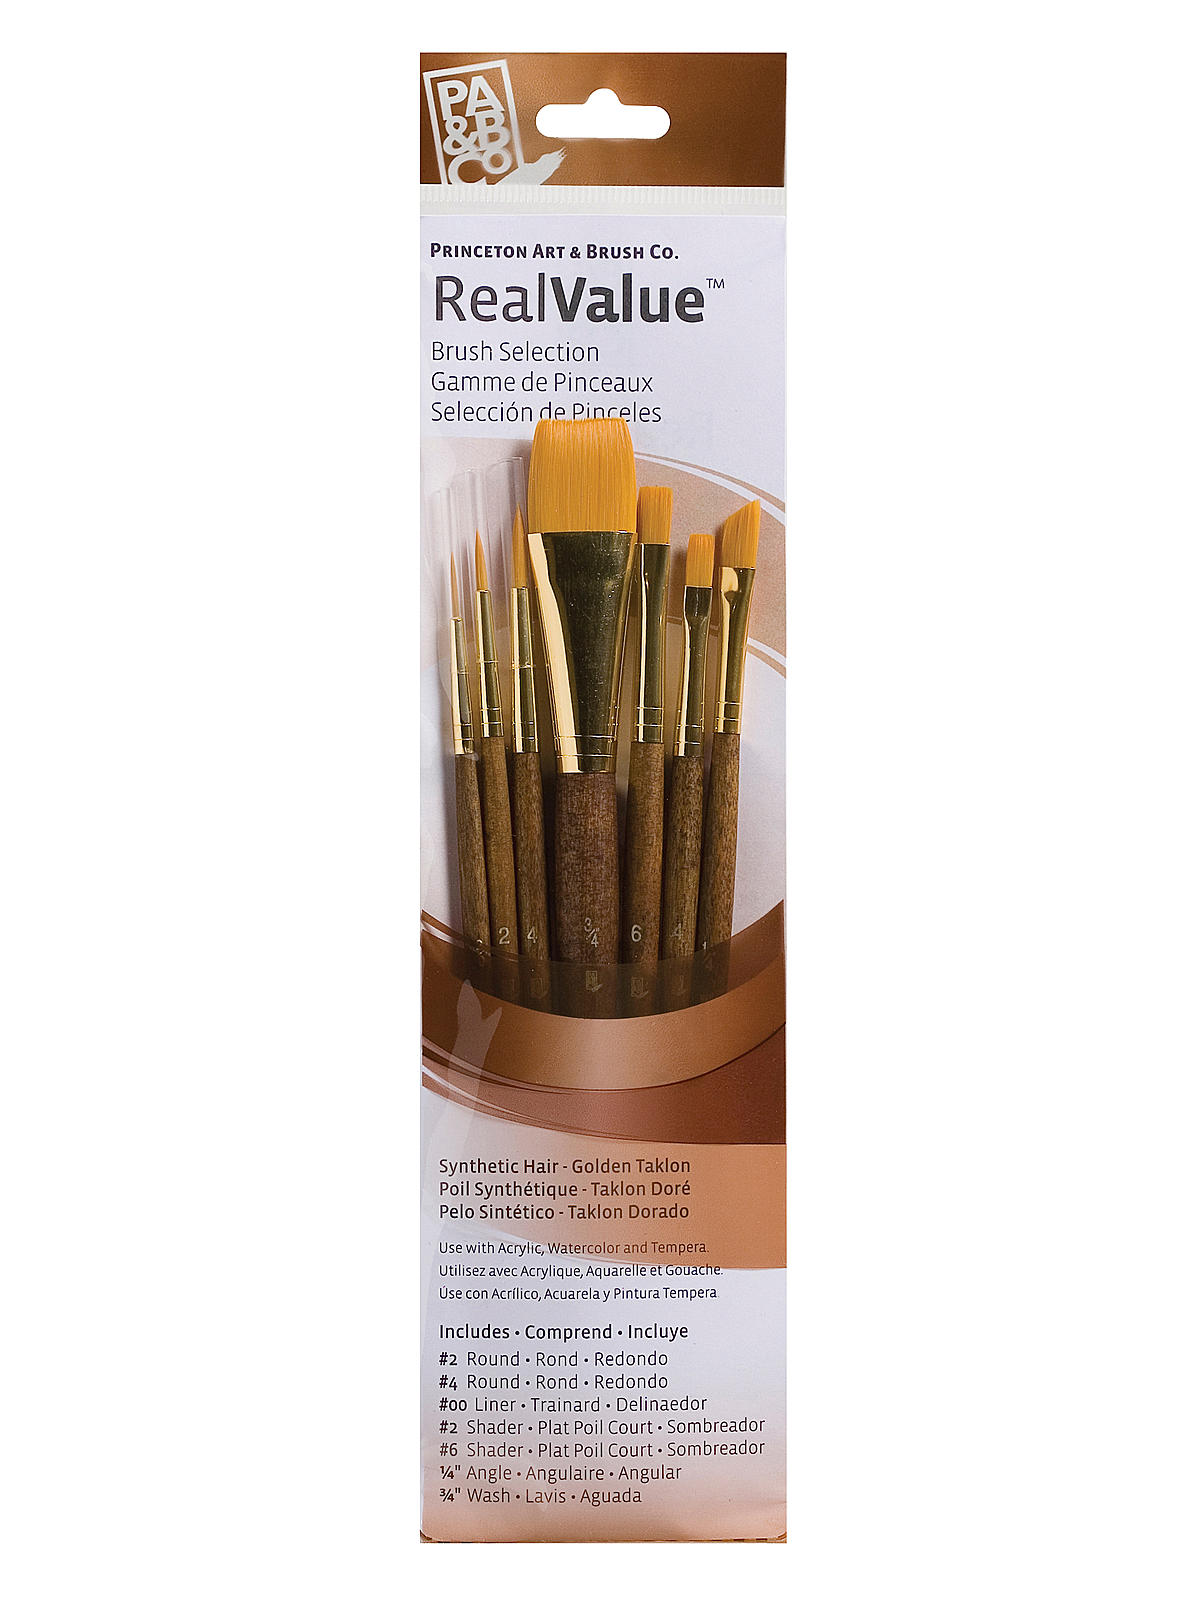 Real Value Series Brown Handled Brush Sets